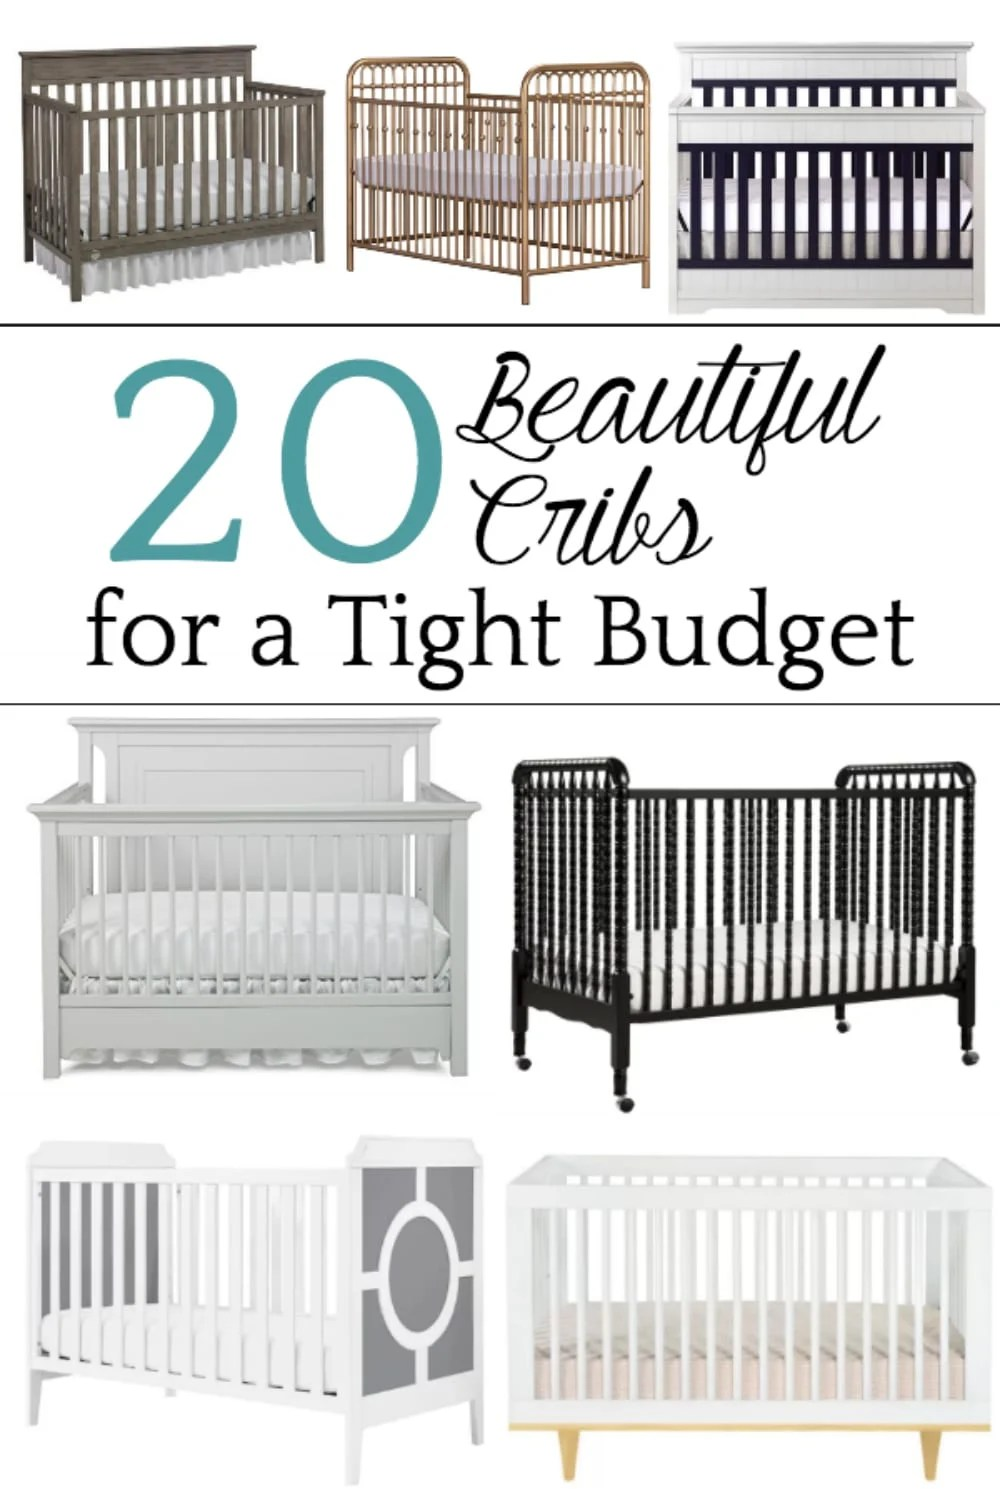 A shopping guide round-up of 20 designer-style beautiful cribs for a tight budget $200 or less. #shoppingguide #nursery #nurserydecor #cribs #babycribs #budgetdecor #budgetshopping #nurseryfurniture #nurserycrib